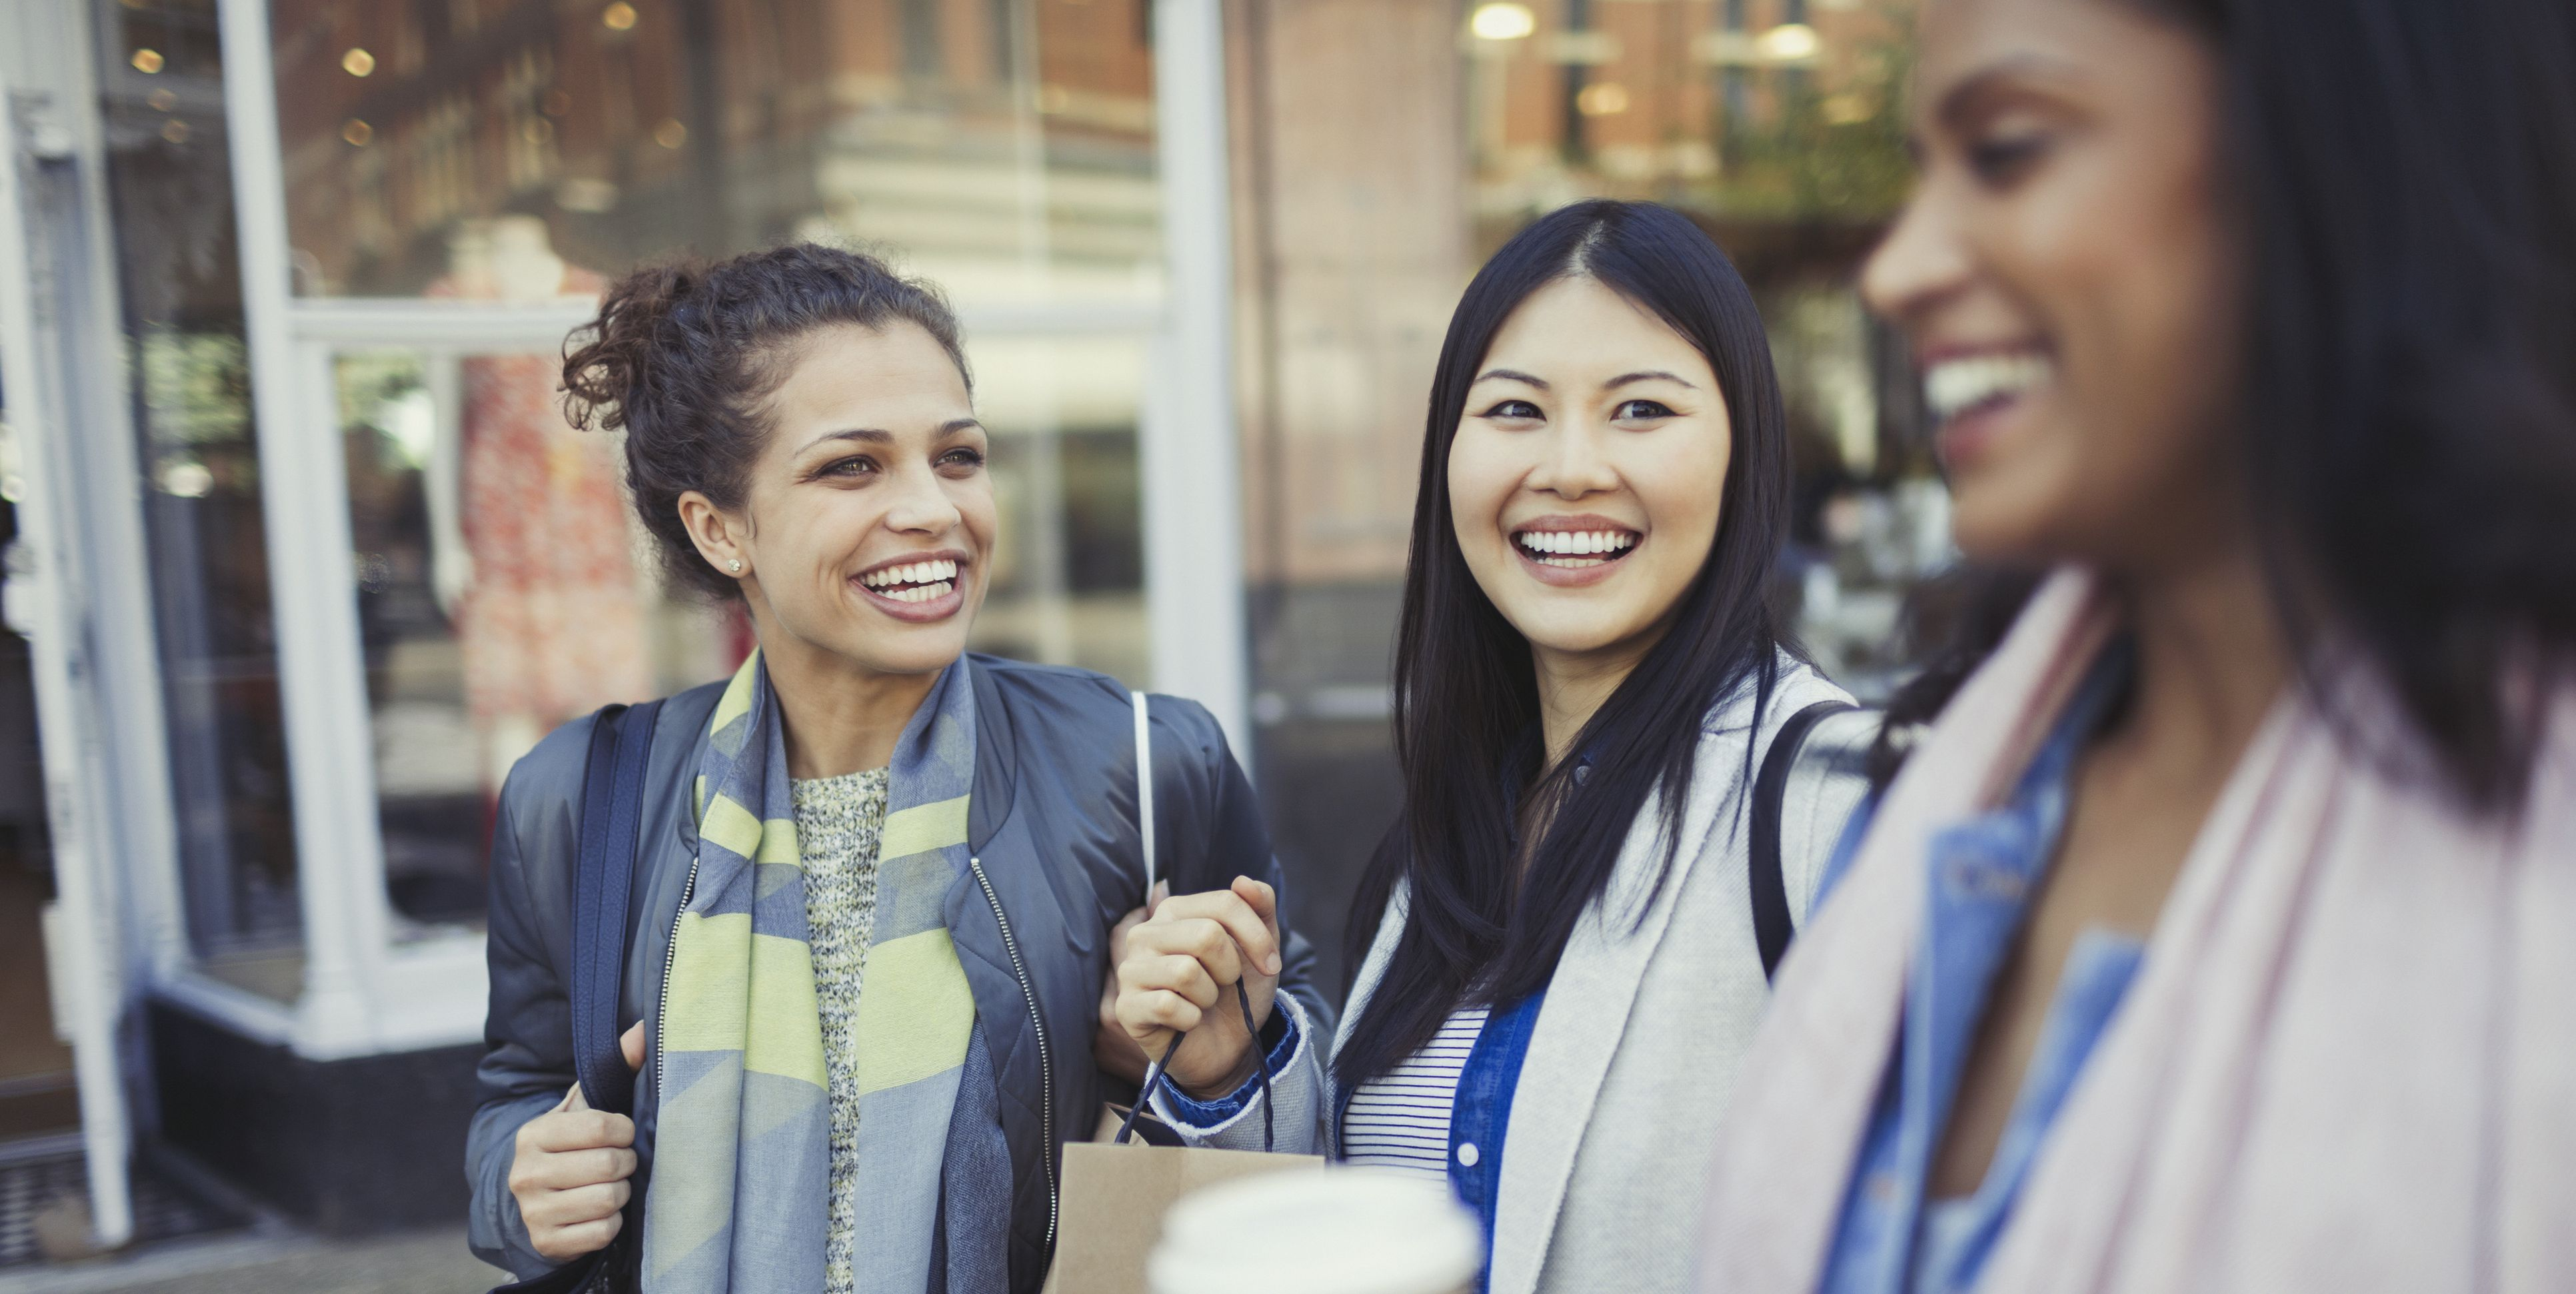 Smiling women friends with shopping bags and coffee outside storefront